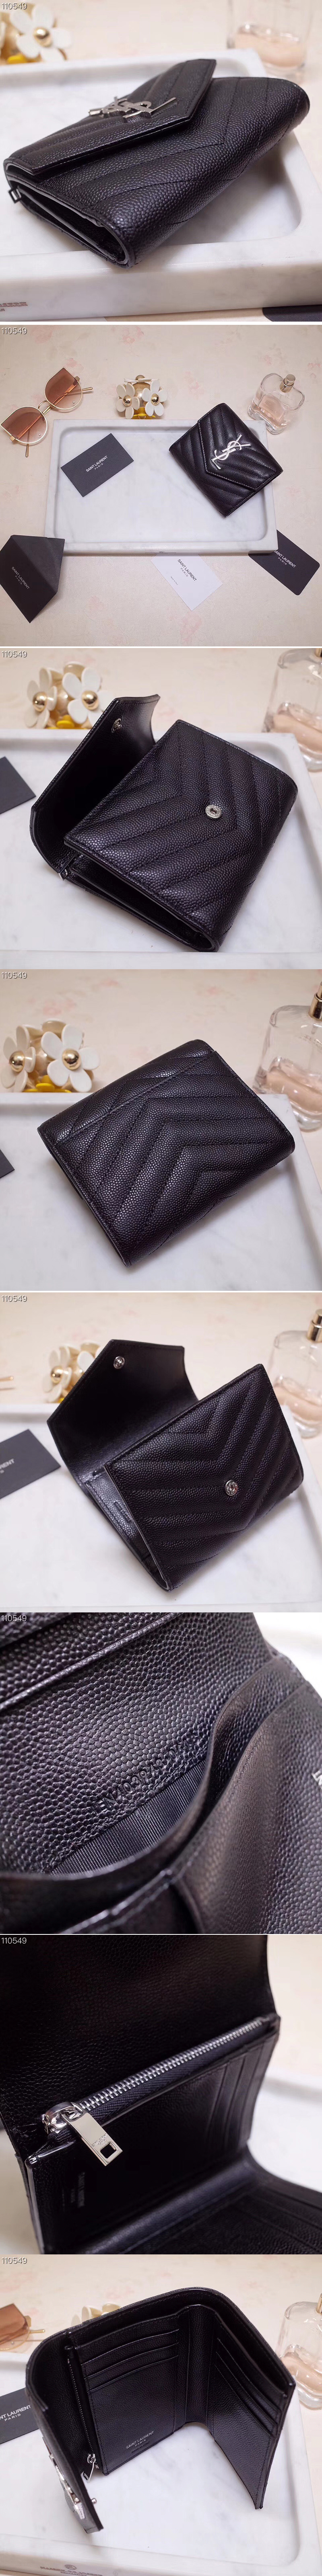 Replica Saint Laurent YSL 403943 Monogram Compact Tri Fold Wallet In Black Grain De Poudre Embossed Leather Silver YSL